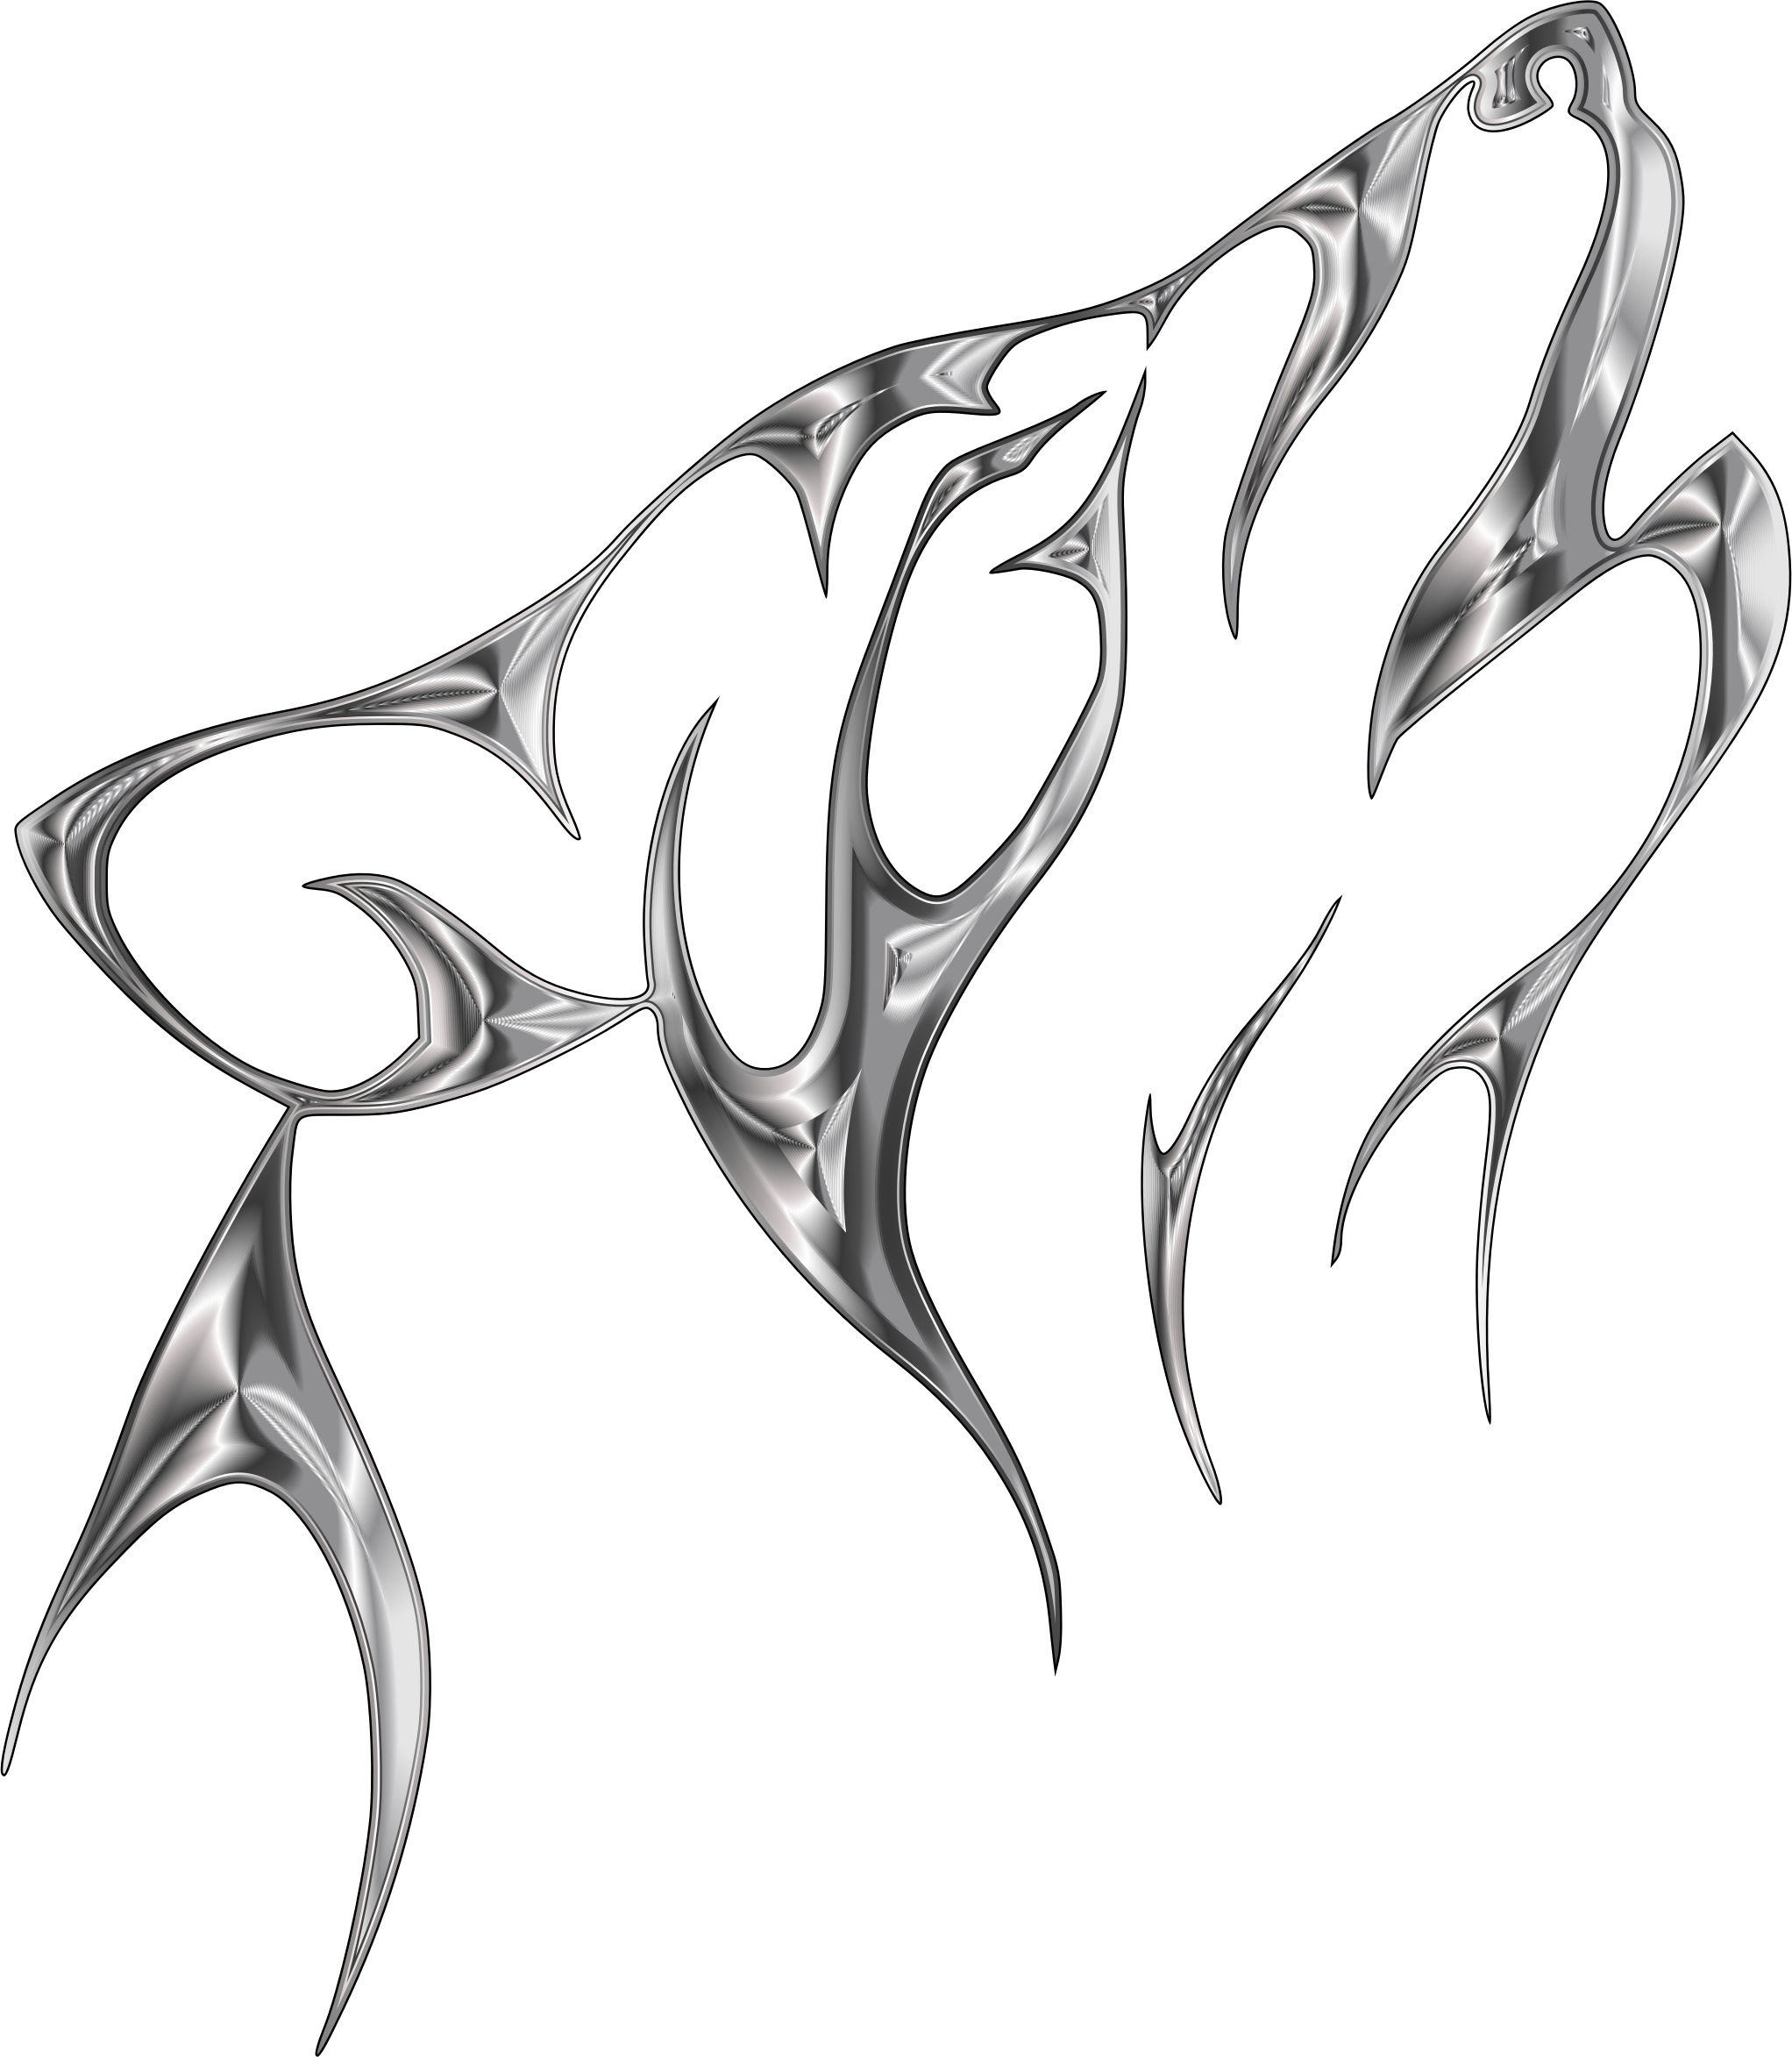 Wolf tribal png. Clipart steel no background